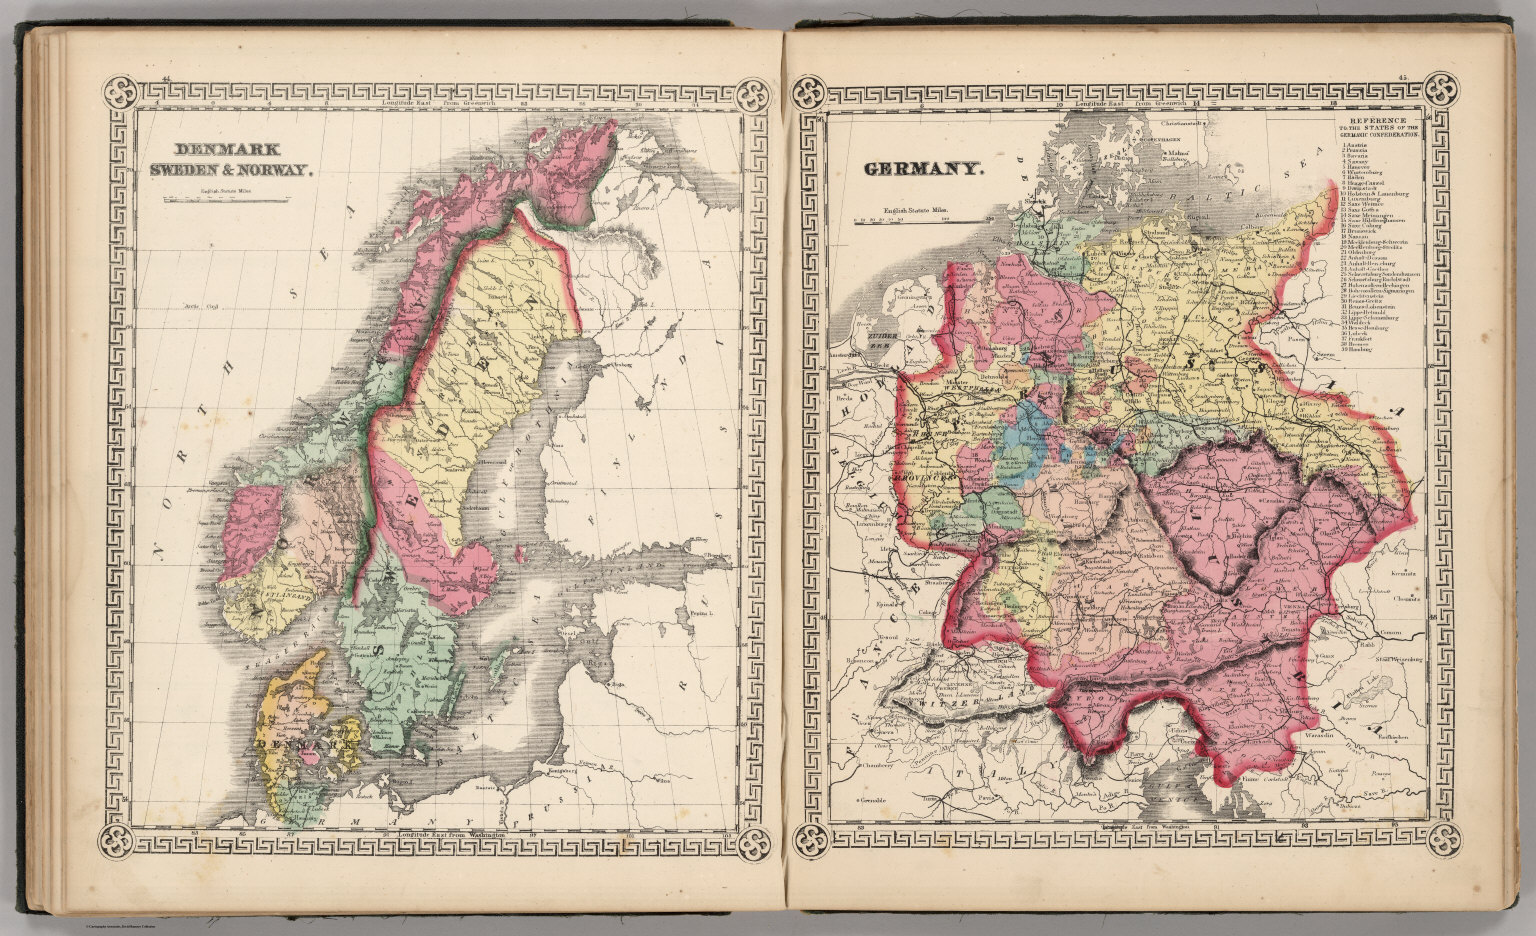 Denmark sweden and norway germany david rumsey historical map denmark sweden and norway germany gumiabroncs